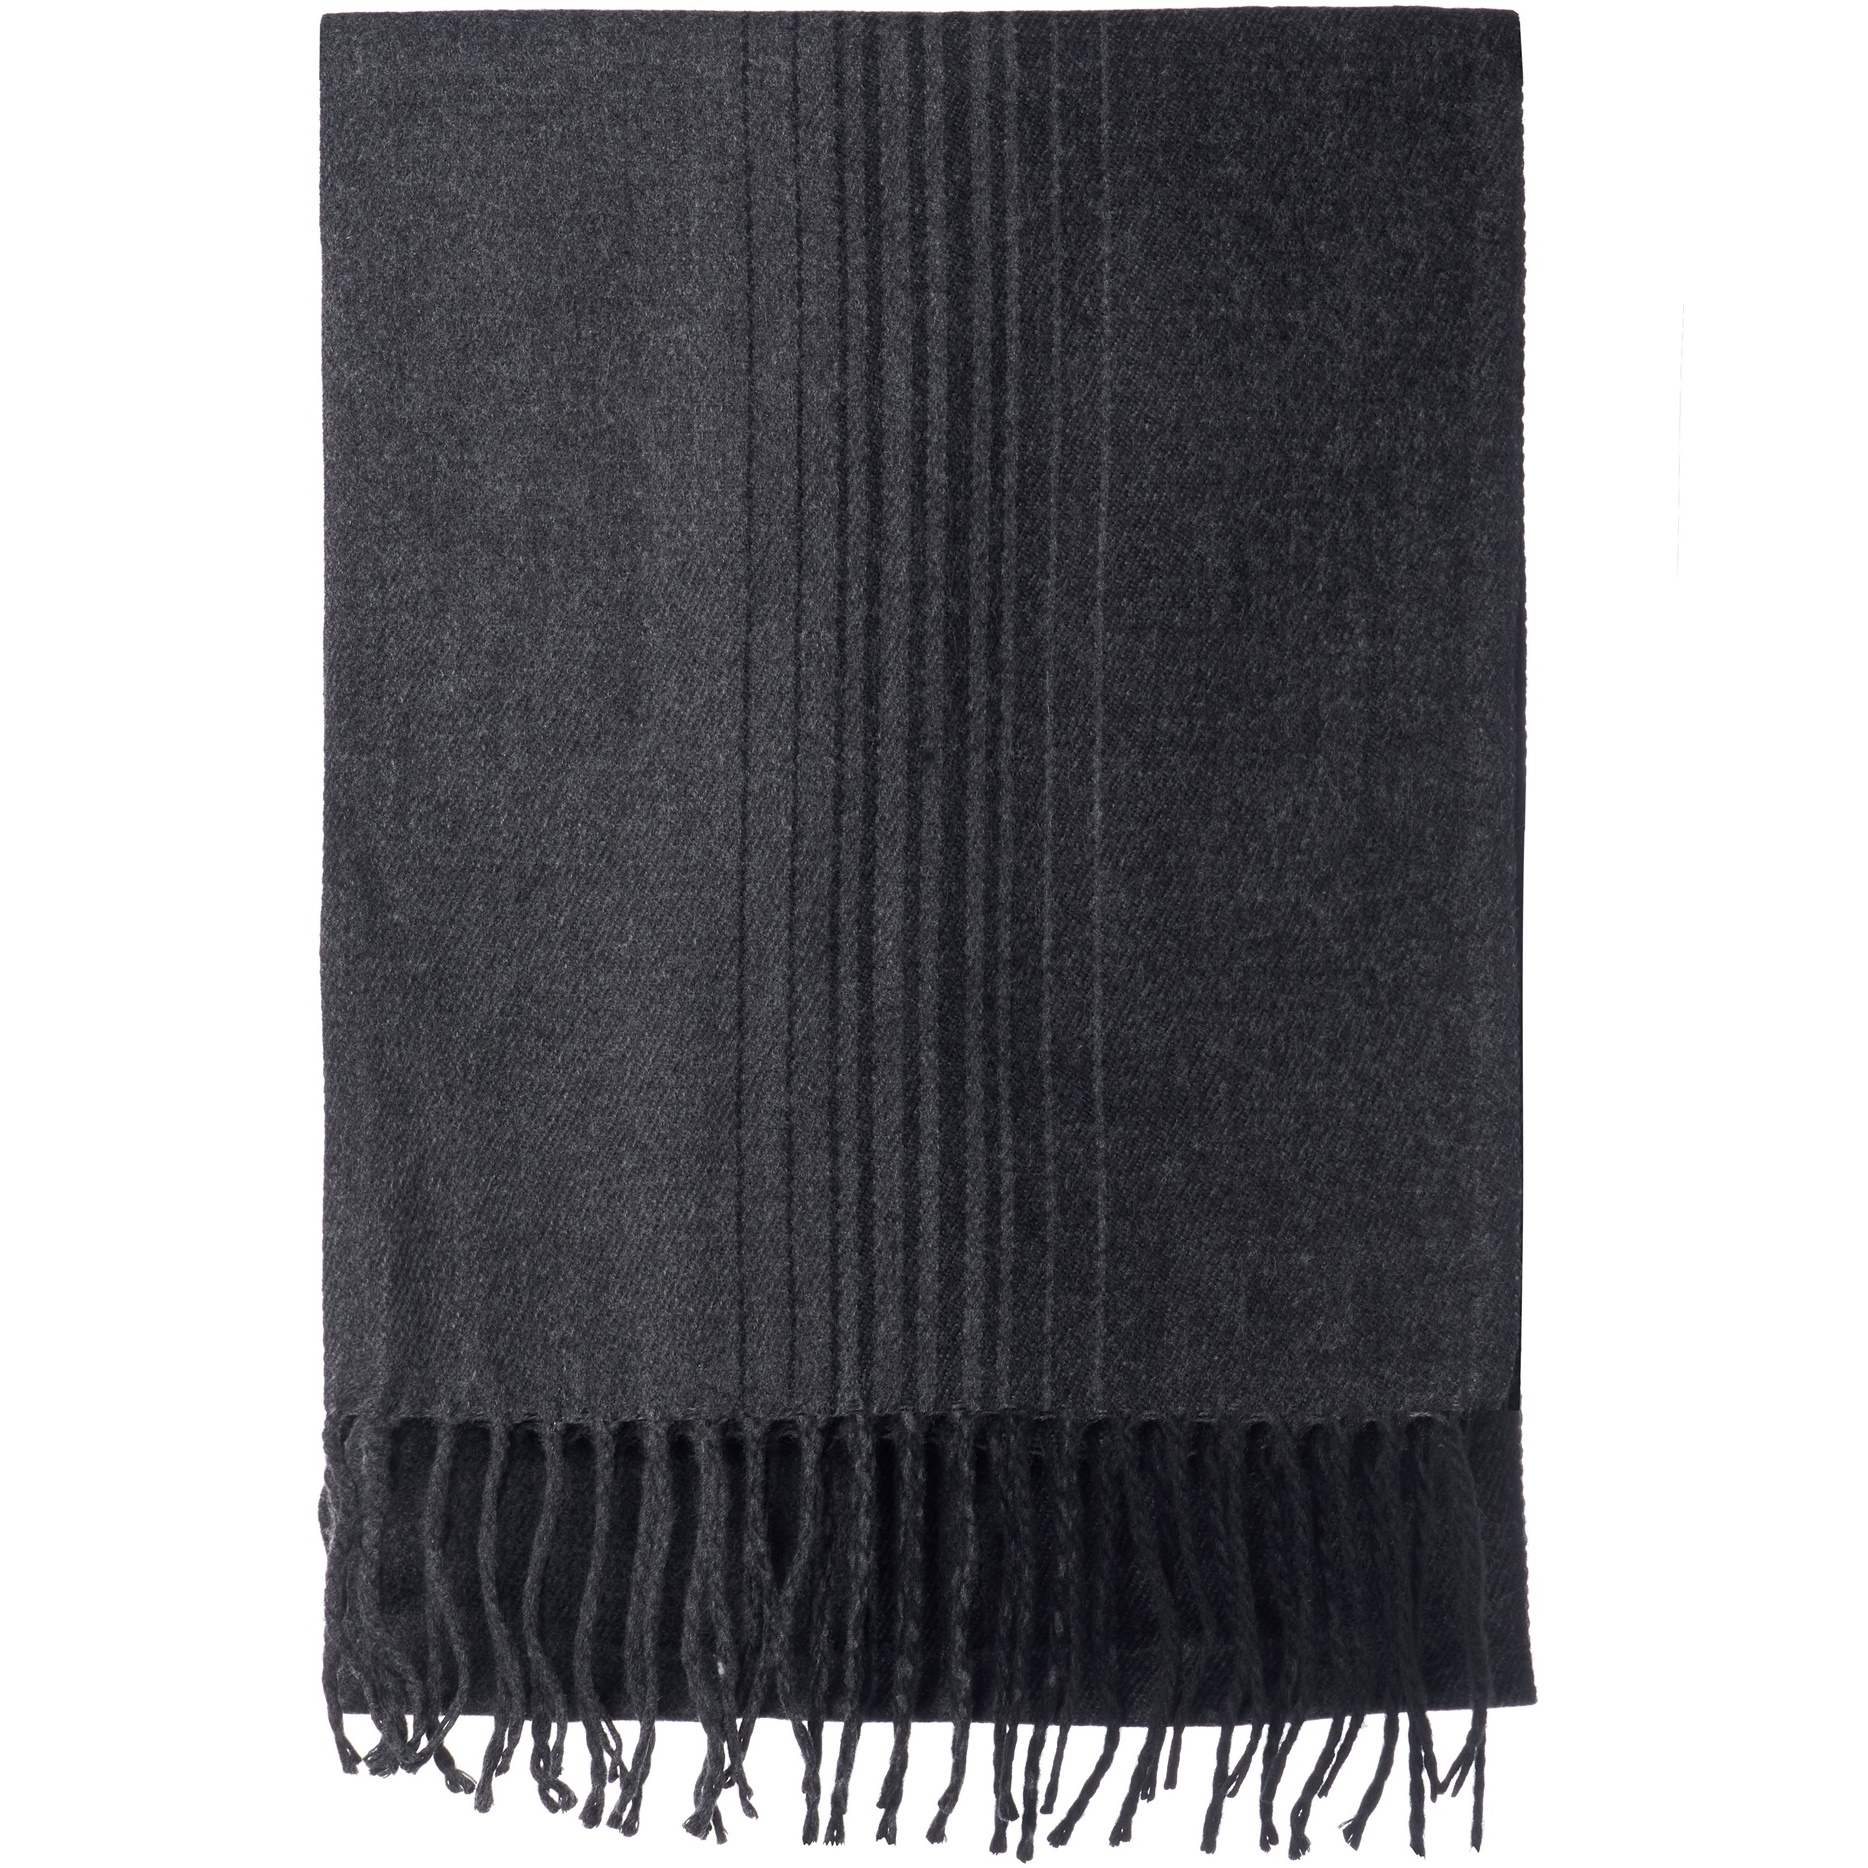 Hammer-Anvil-Mens-Plaid-Striped-Scarf-Womens-Winter-Scarves-Cashmere-Soft-Feel thumbnail 25